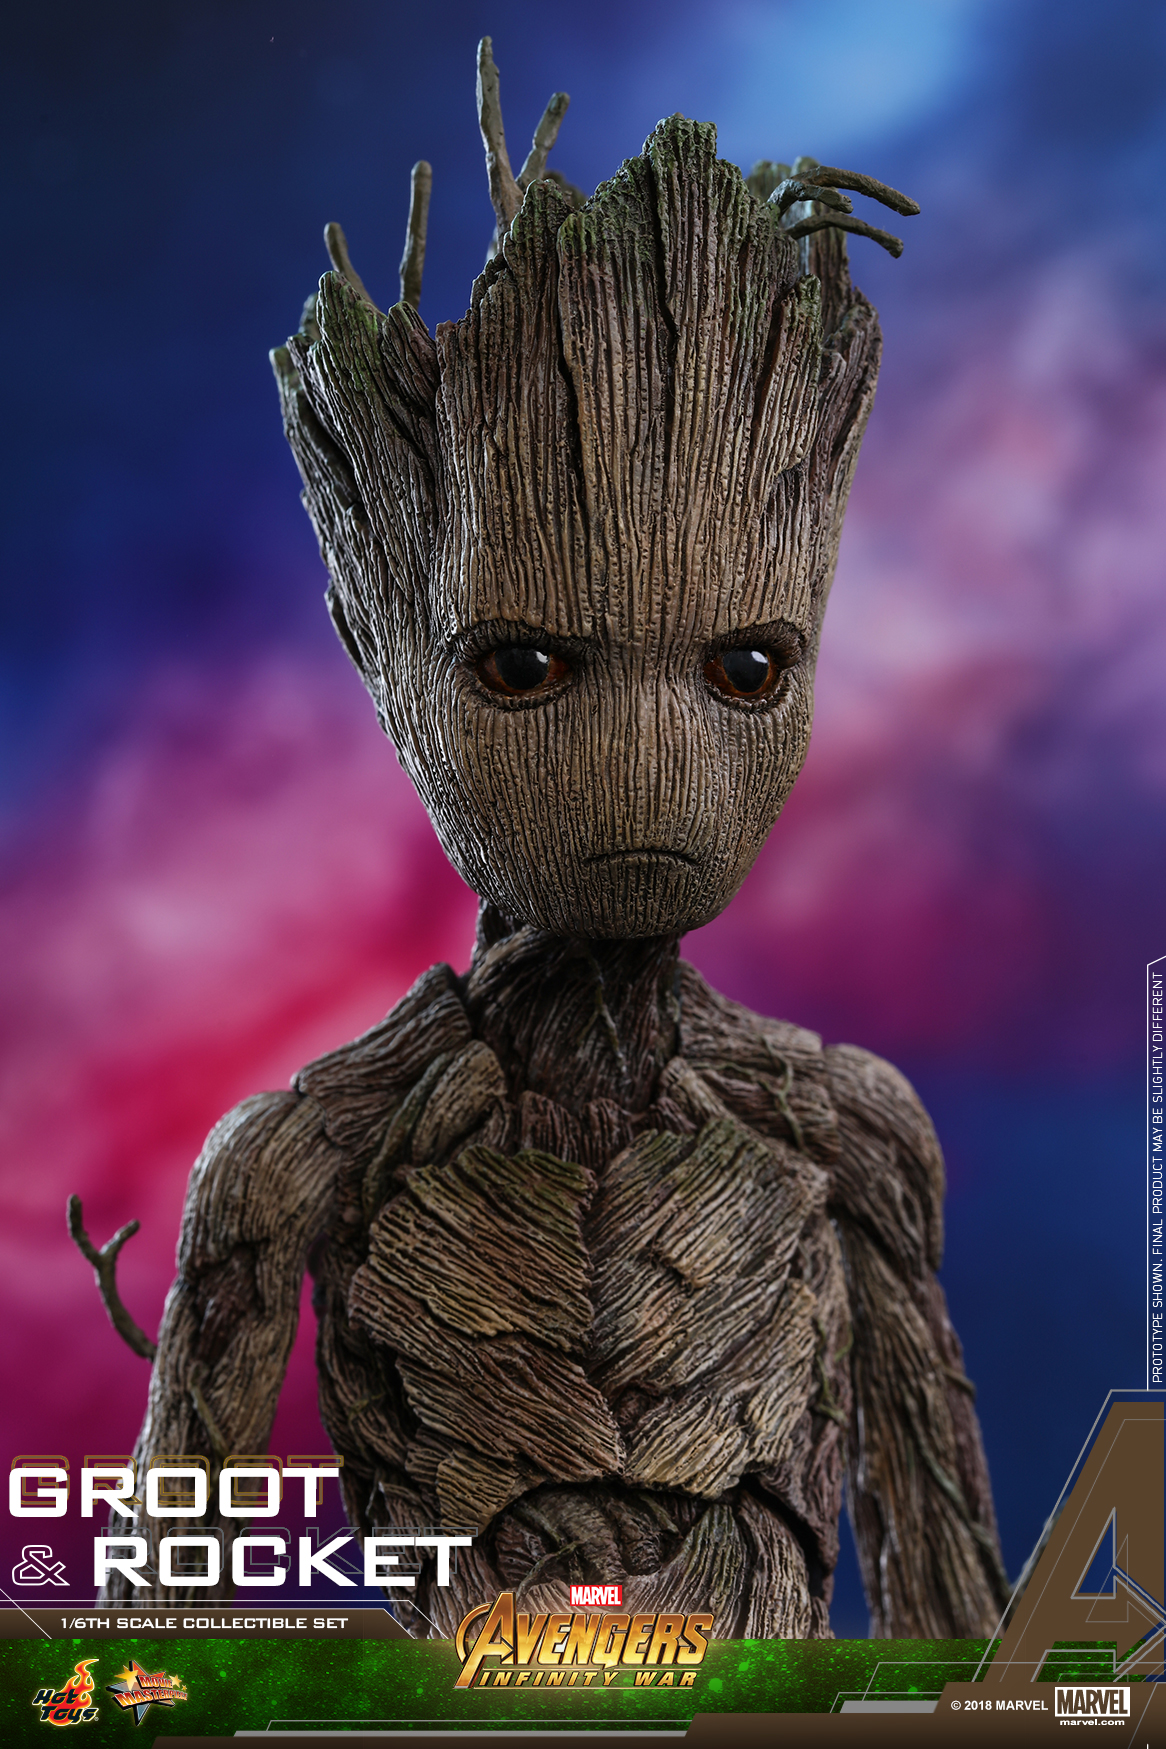 Hot Toys - AIW - Groot & Rocket collectible set_PR13